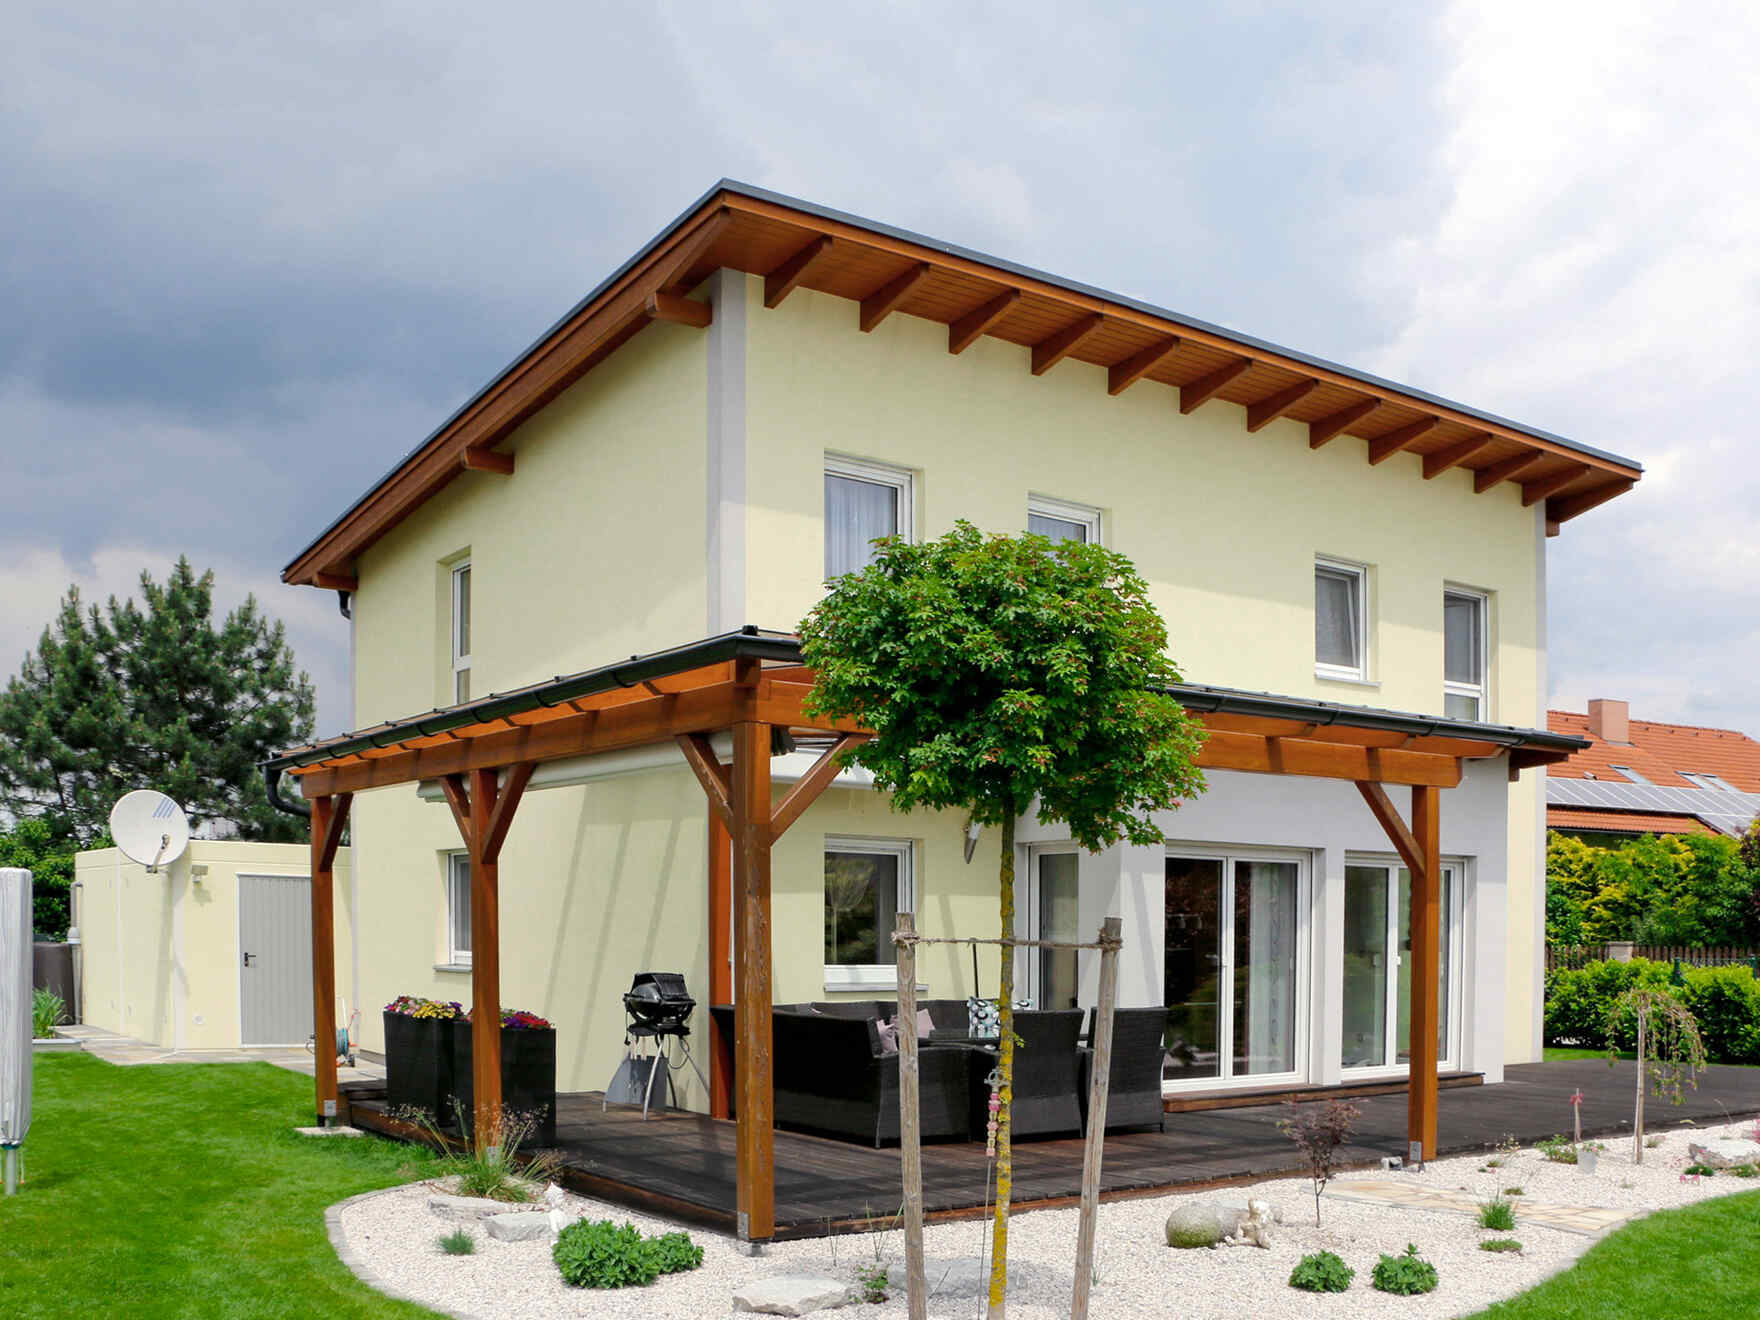 Gruber Massivholzhaus Prefabricated Houses From Vario Haus Gives Your Life A Home